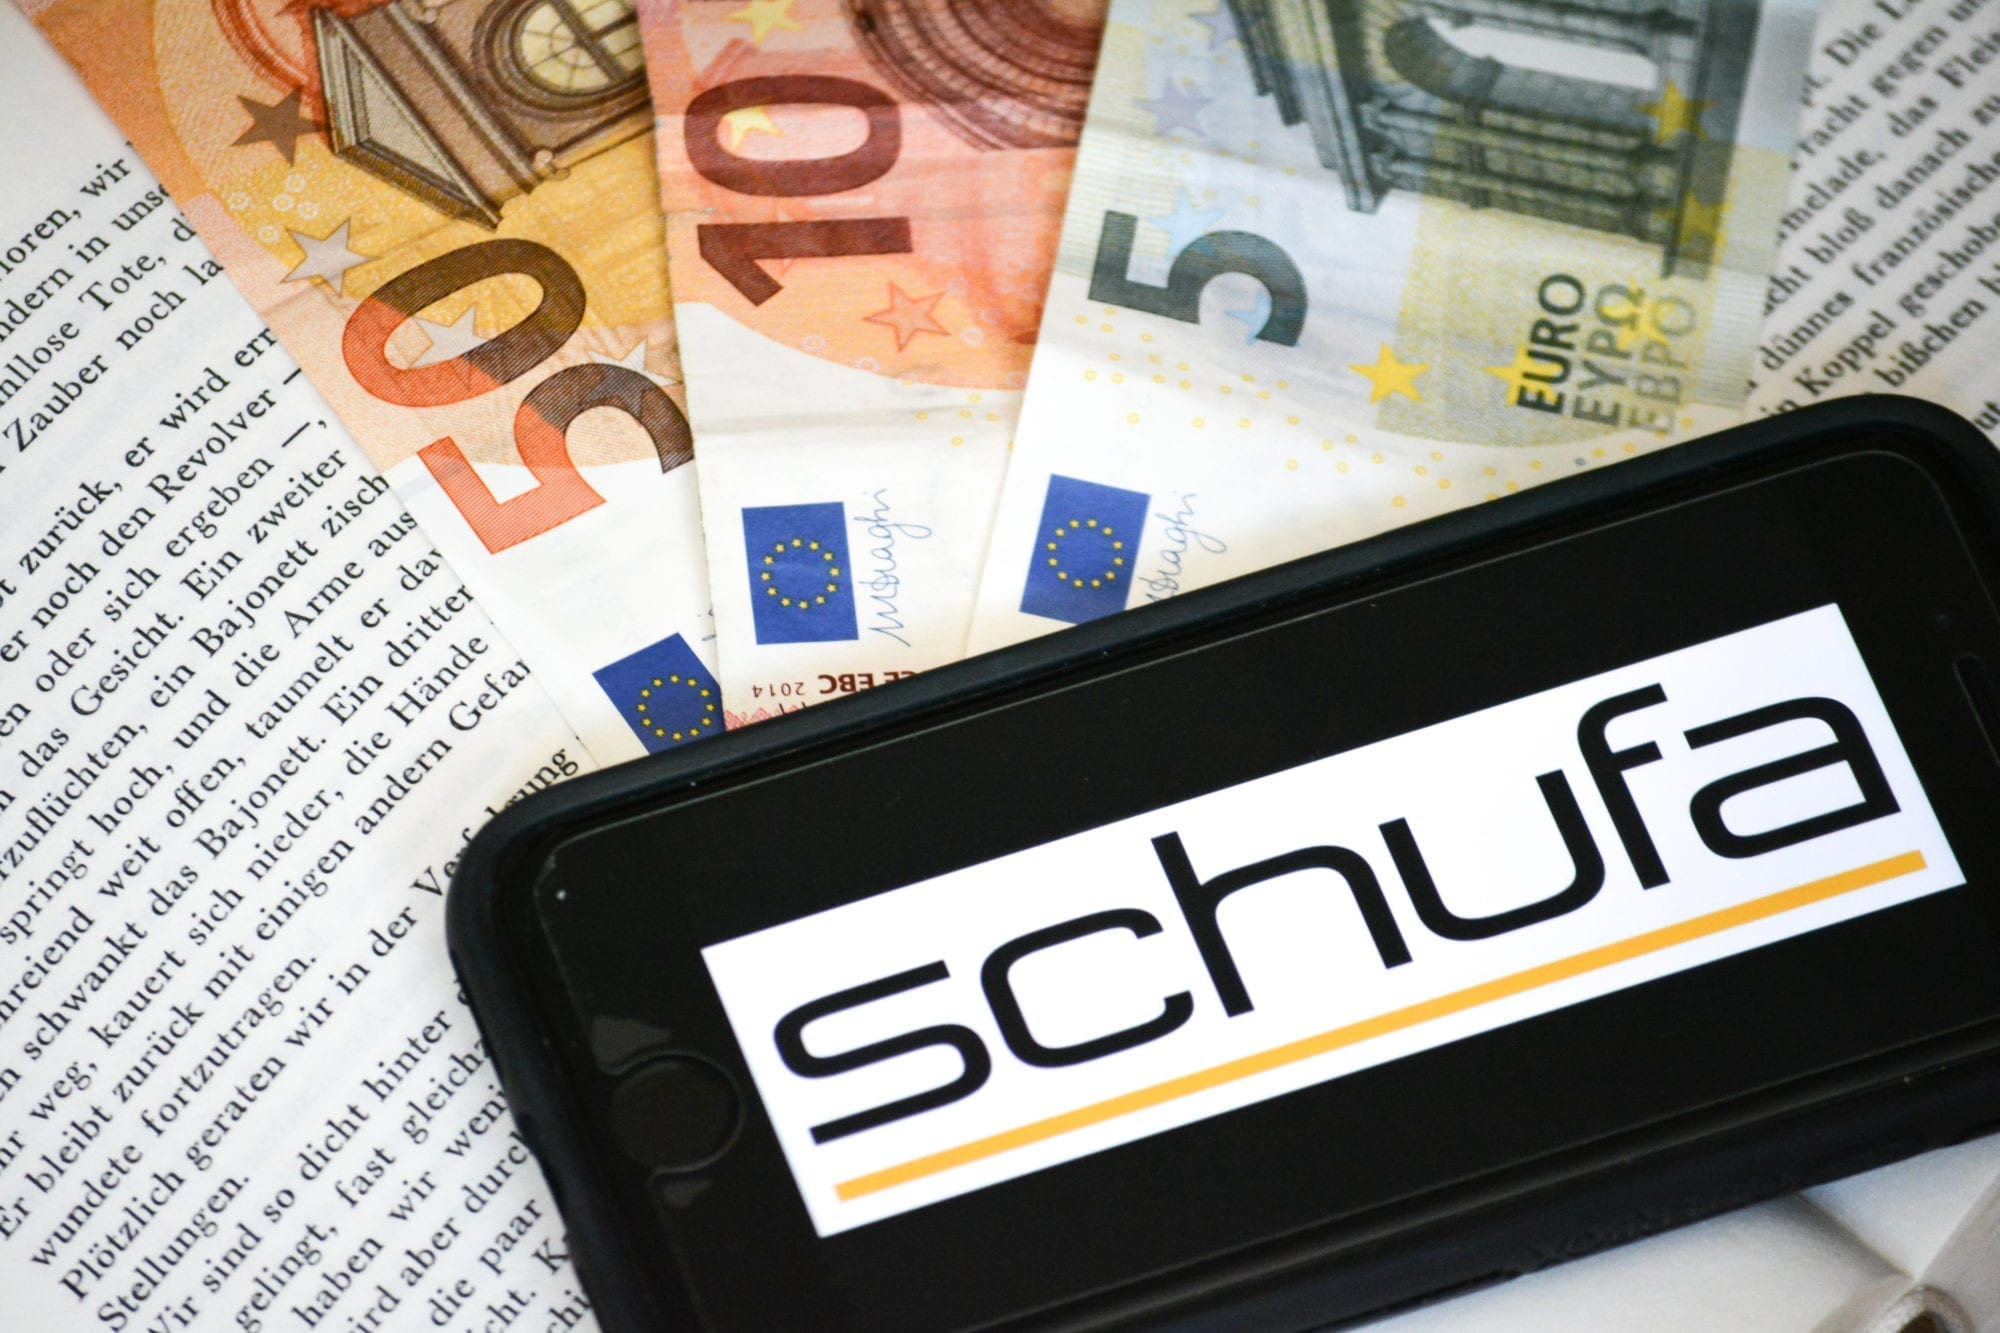 What is SCHUFA and how do I get it for free?